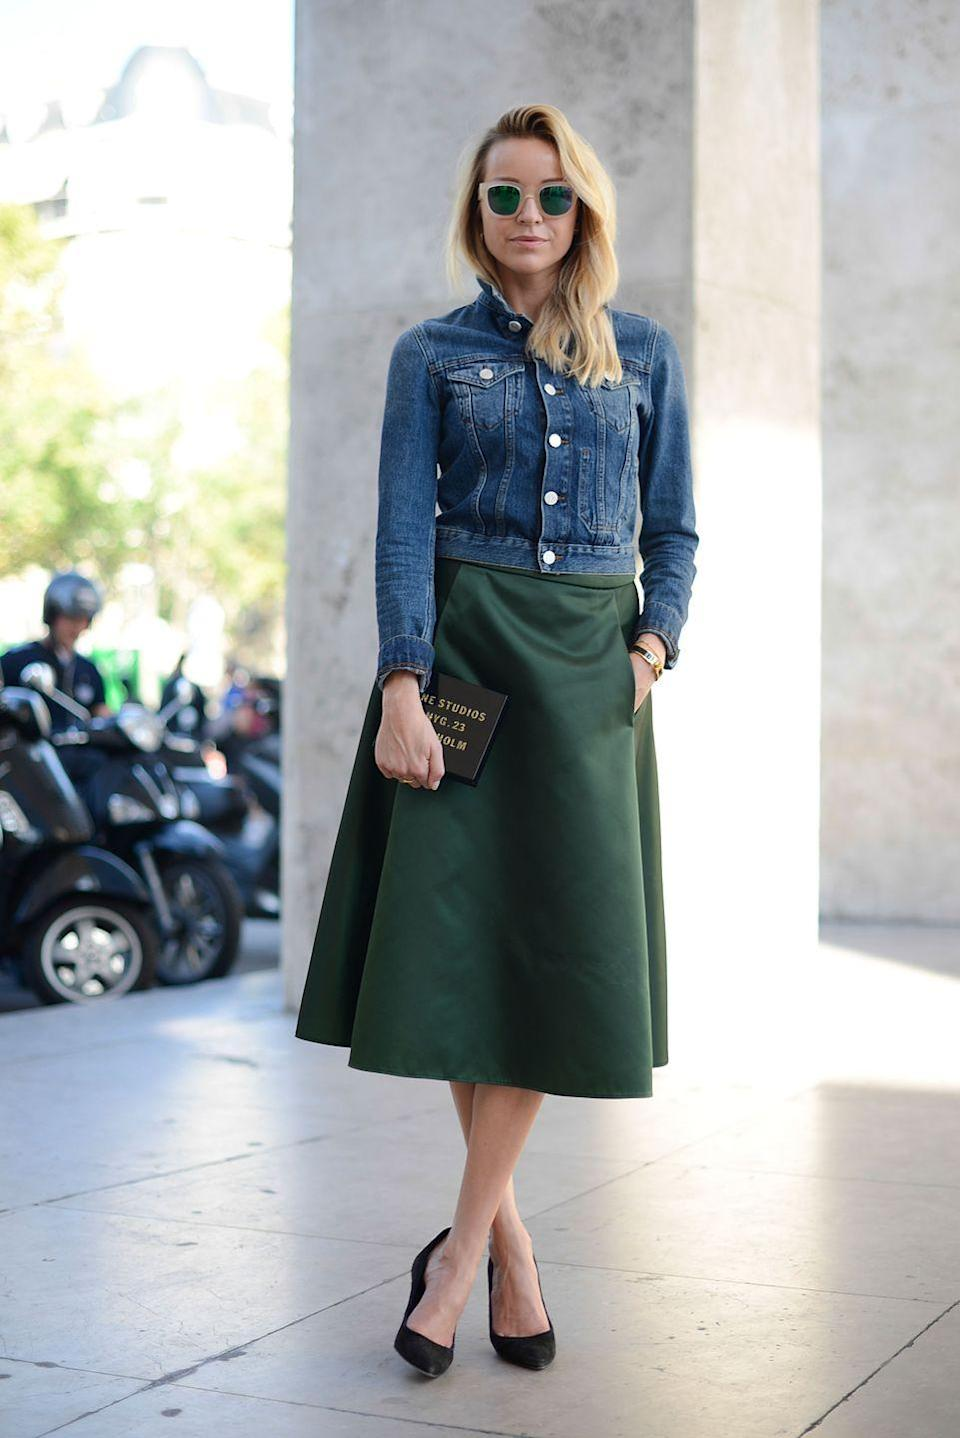 <p>A denim jacket buttoned all the way to the top is a perfect pairing with a skirt or trousers. Pop the collar to give it a little attitude. </p>